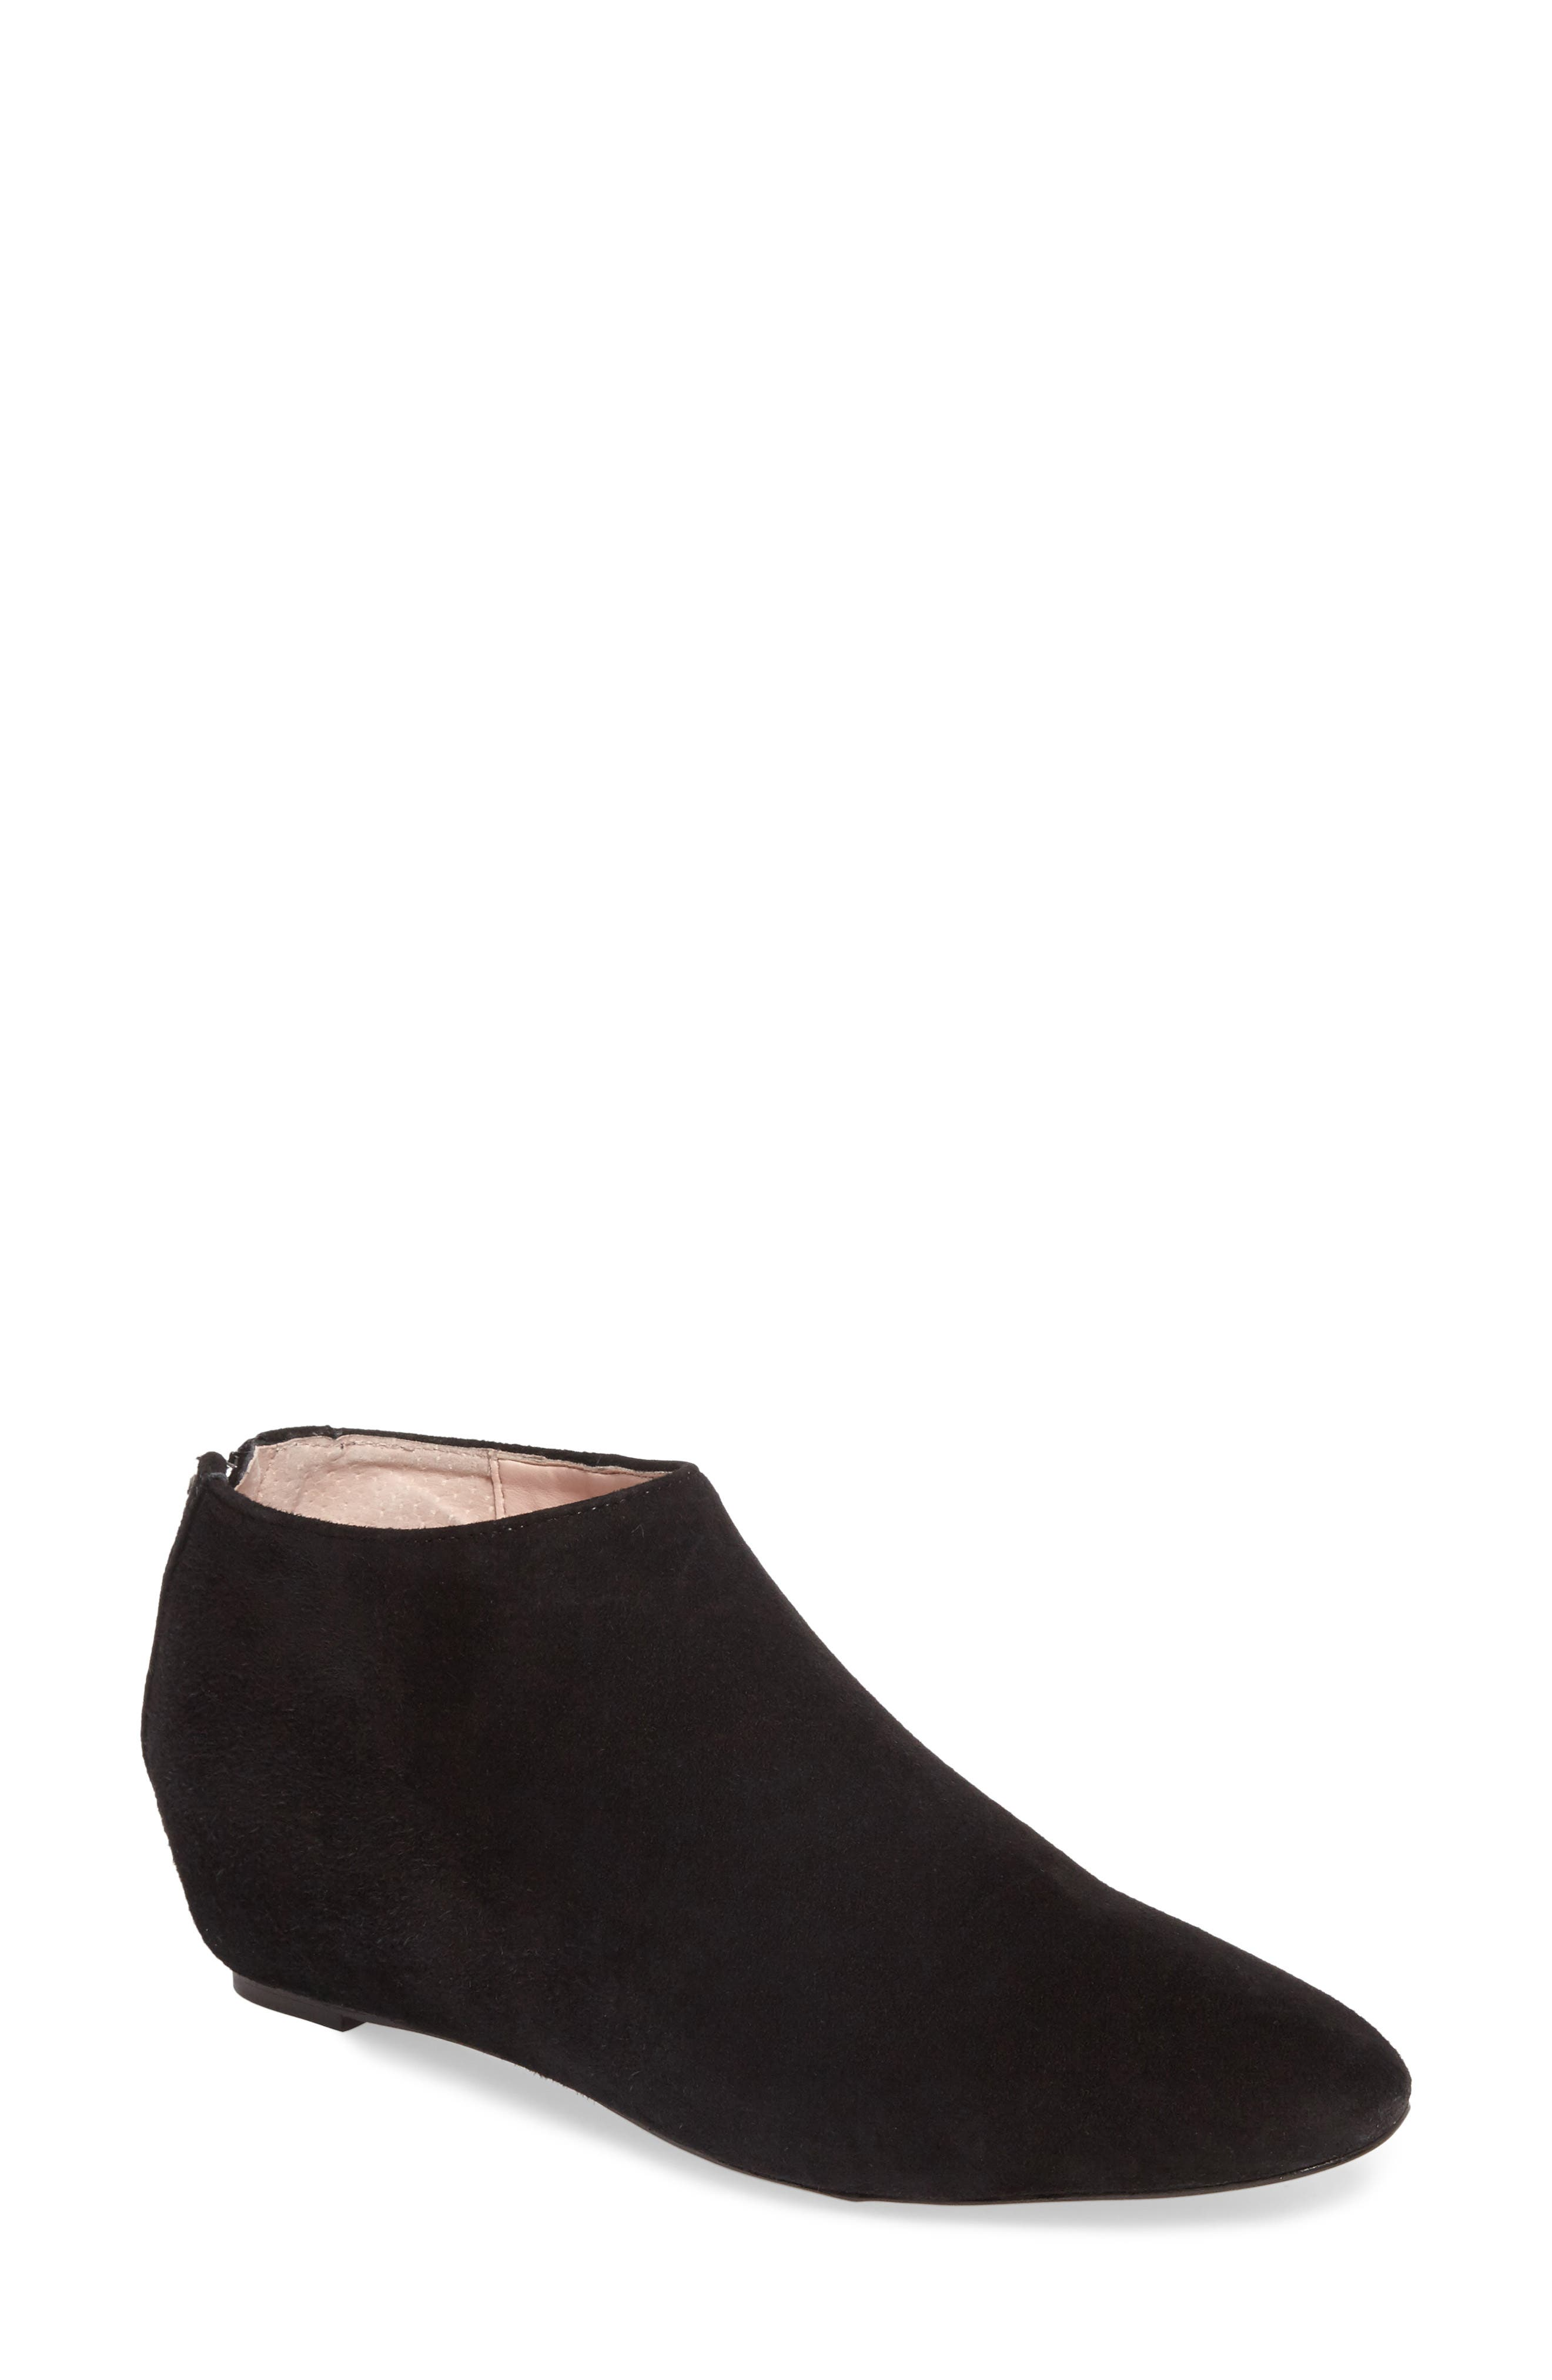 Aves Les Filles Beatrice Ankle Boot,                         Main,                         color, Black Suede